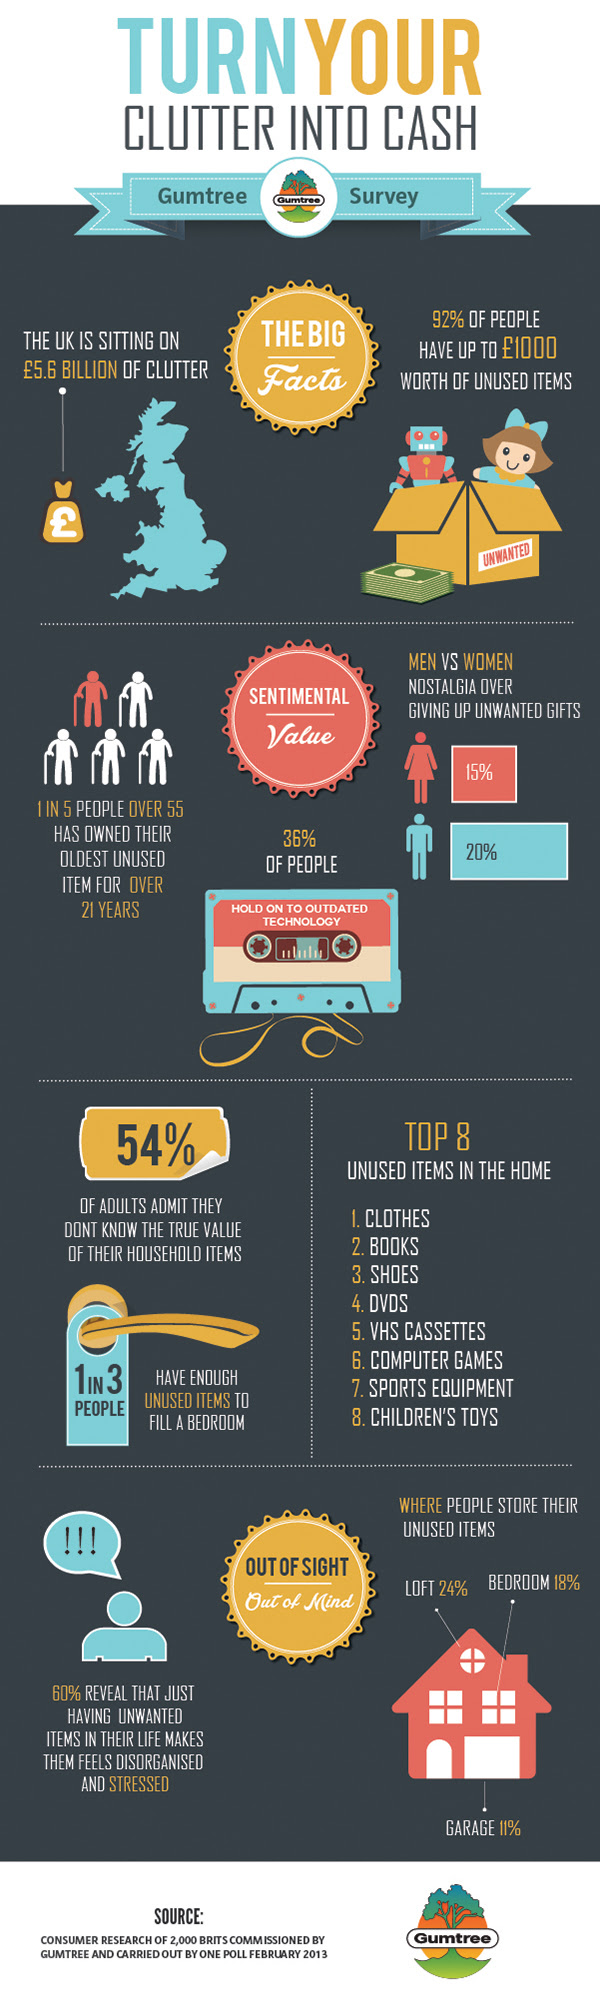 De-clutter your home infographic